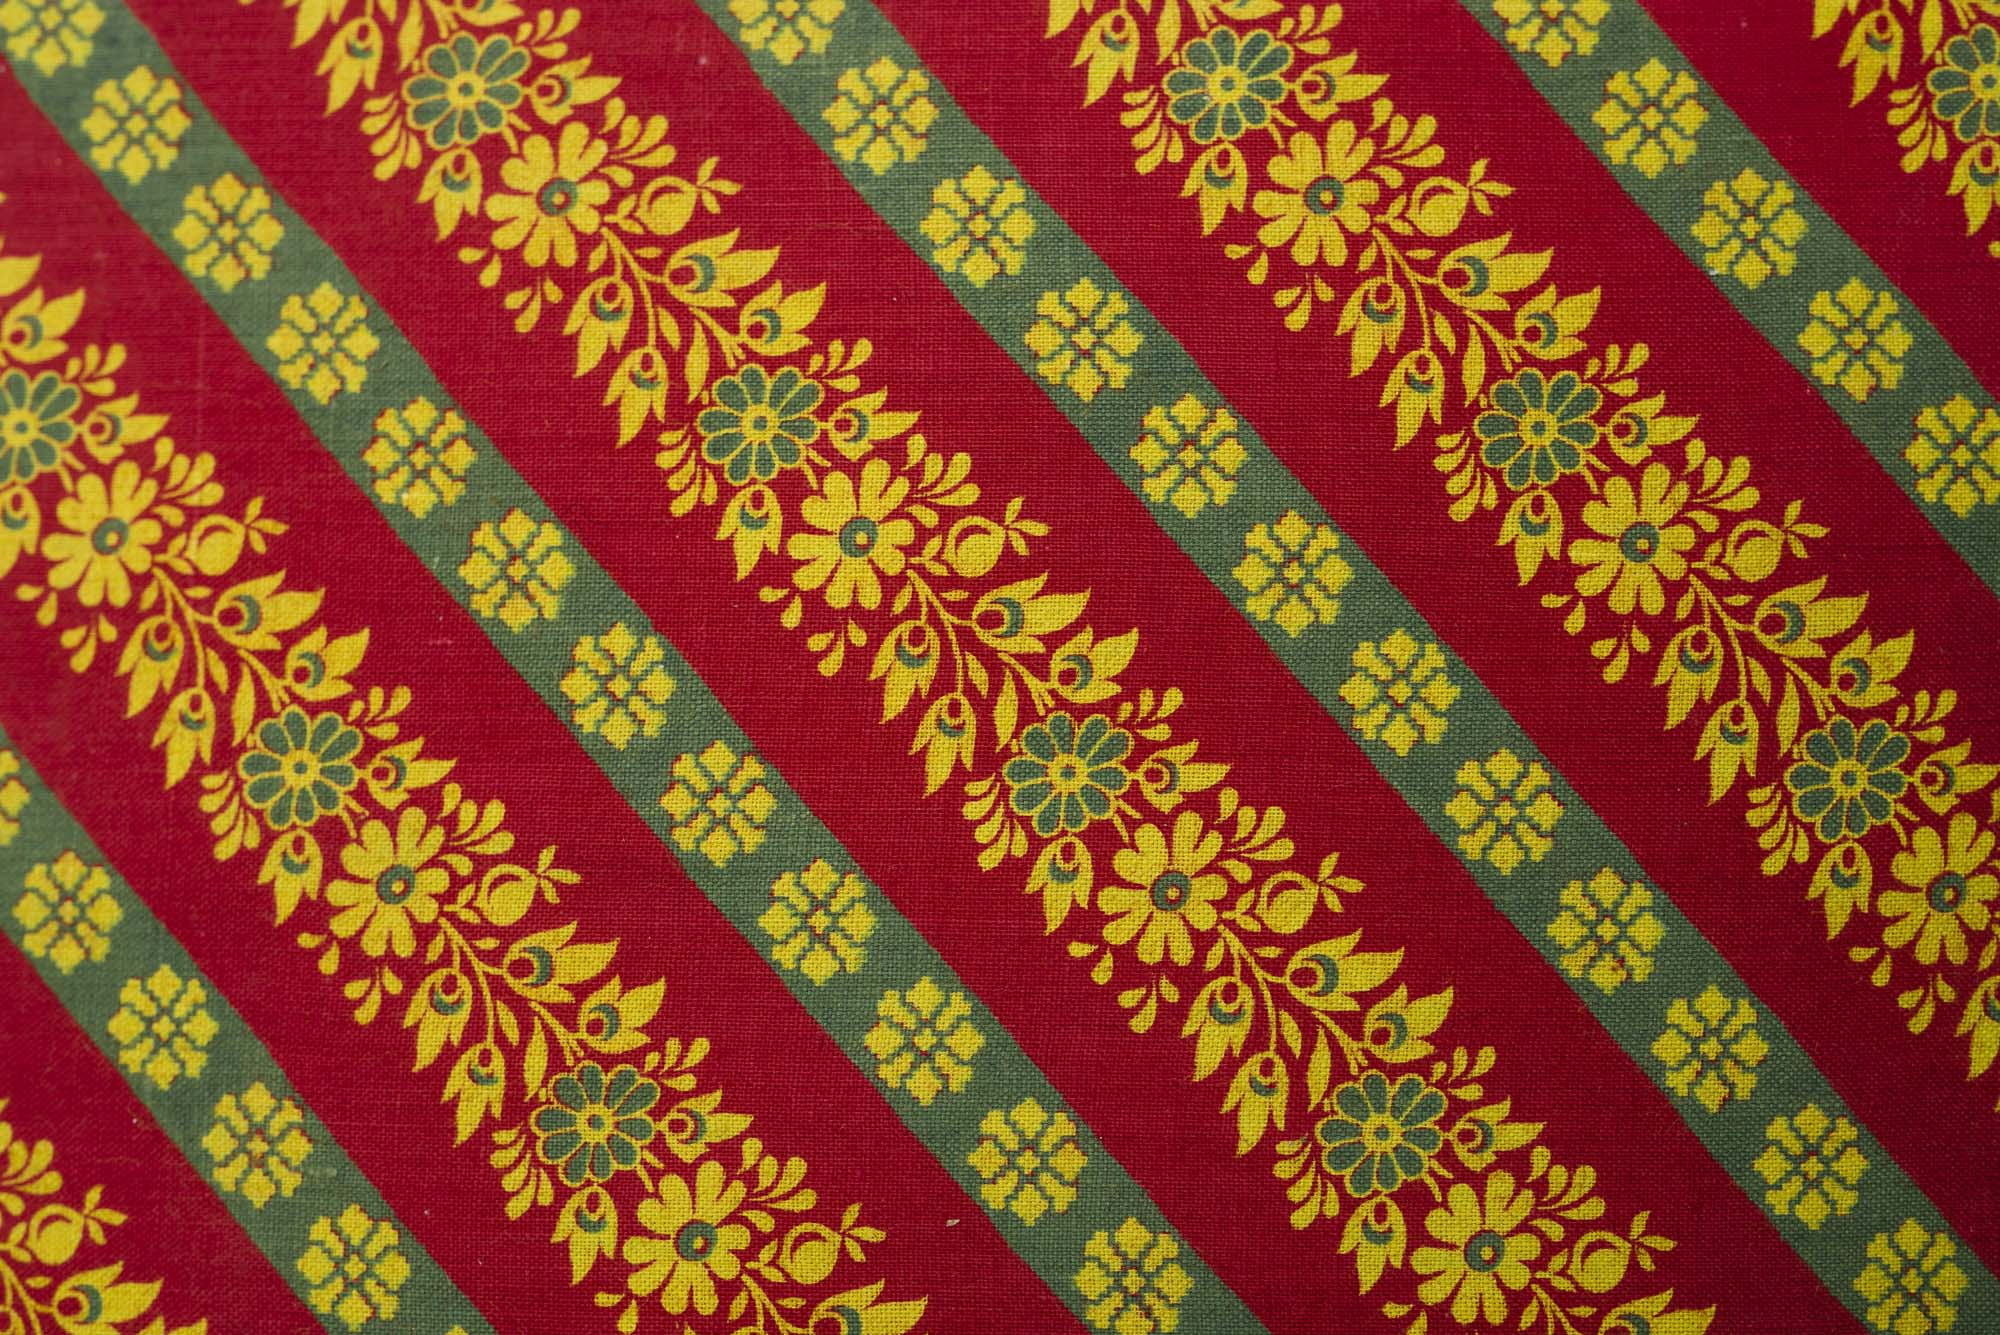 a tetxtile sample with rows of floral patterns against a red background coloured cloth